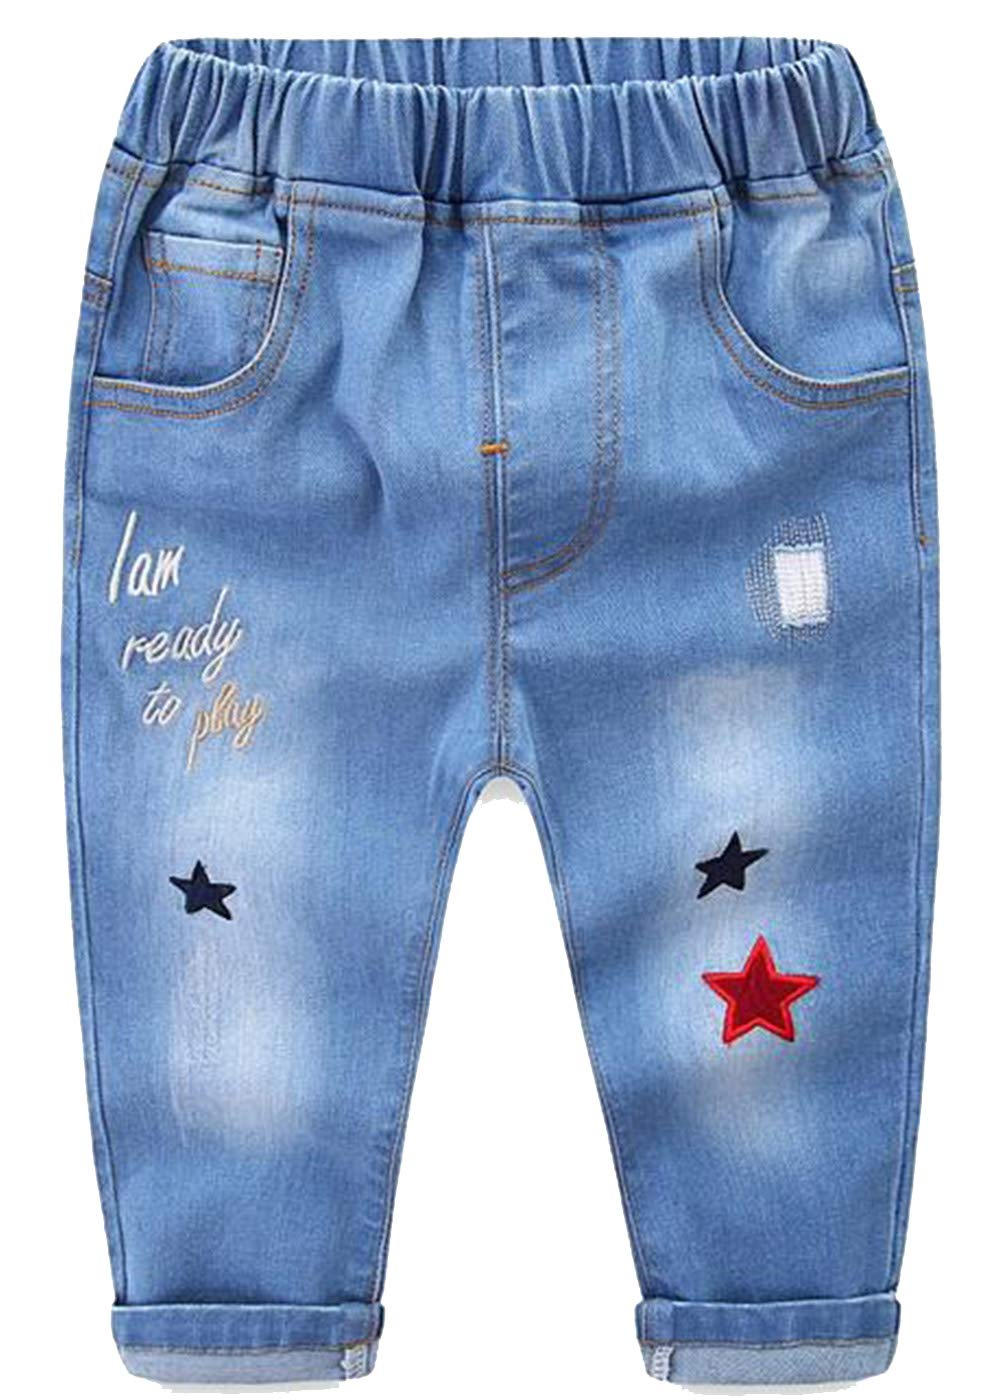 MMWORM Baby Jeans Toddlers Pants Cotton Elastic Waistband Infant Trousers Kids Denim Style Basic Jeans Pants